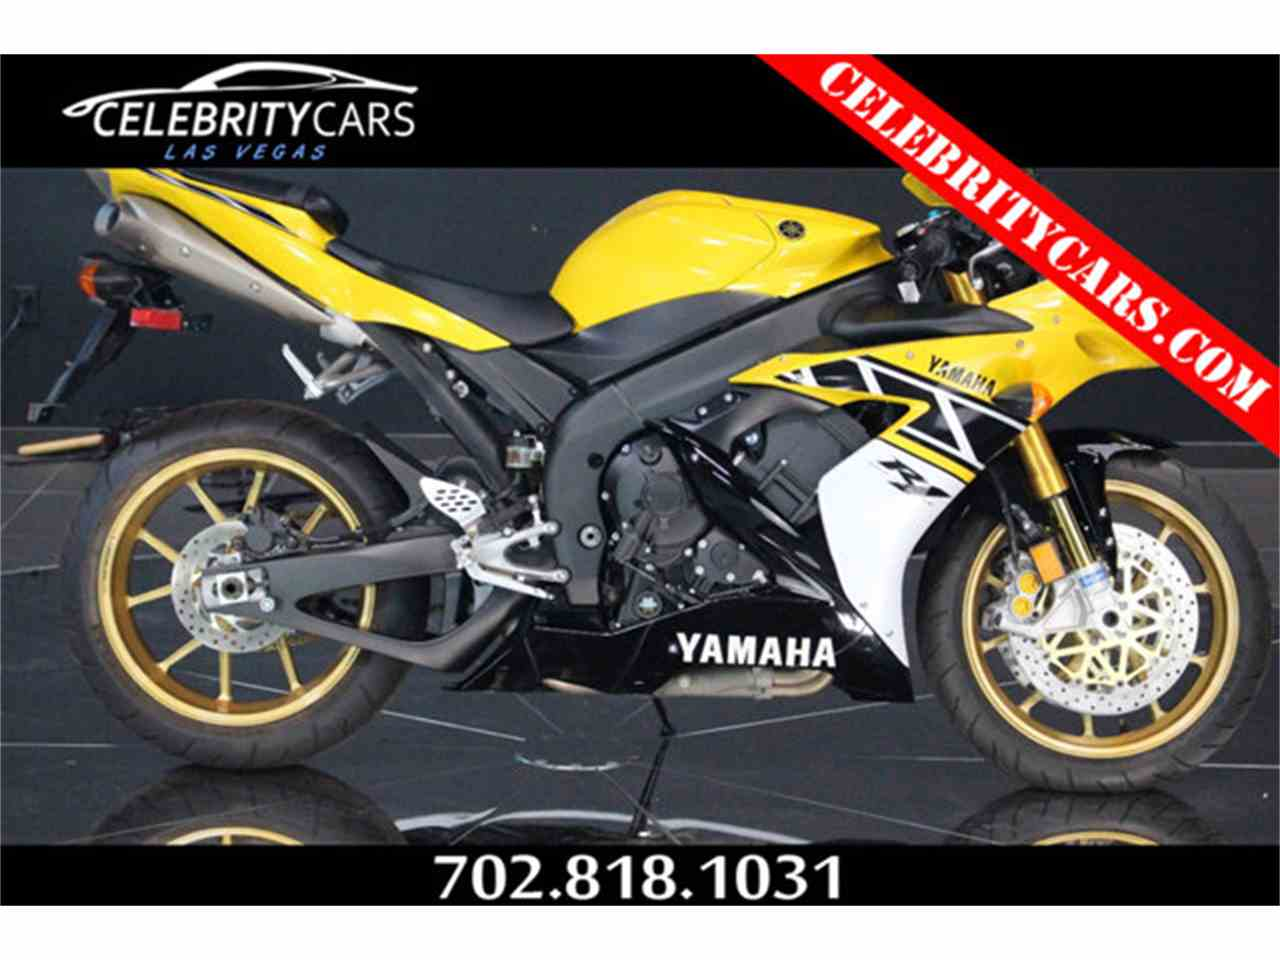 2006 Yamaha Motorcycle for Sale - CC-881793